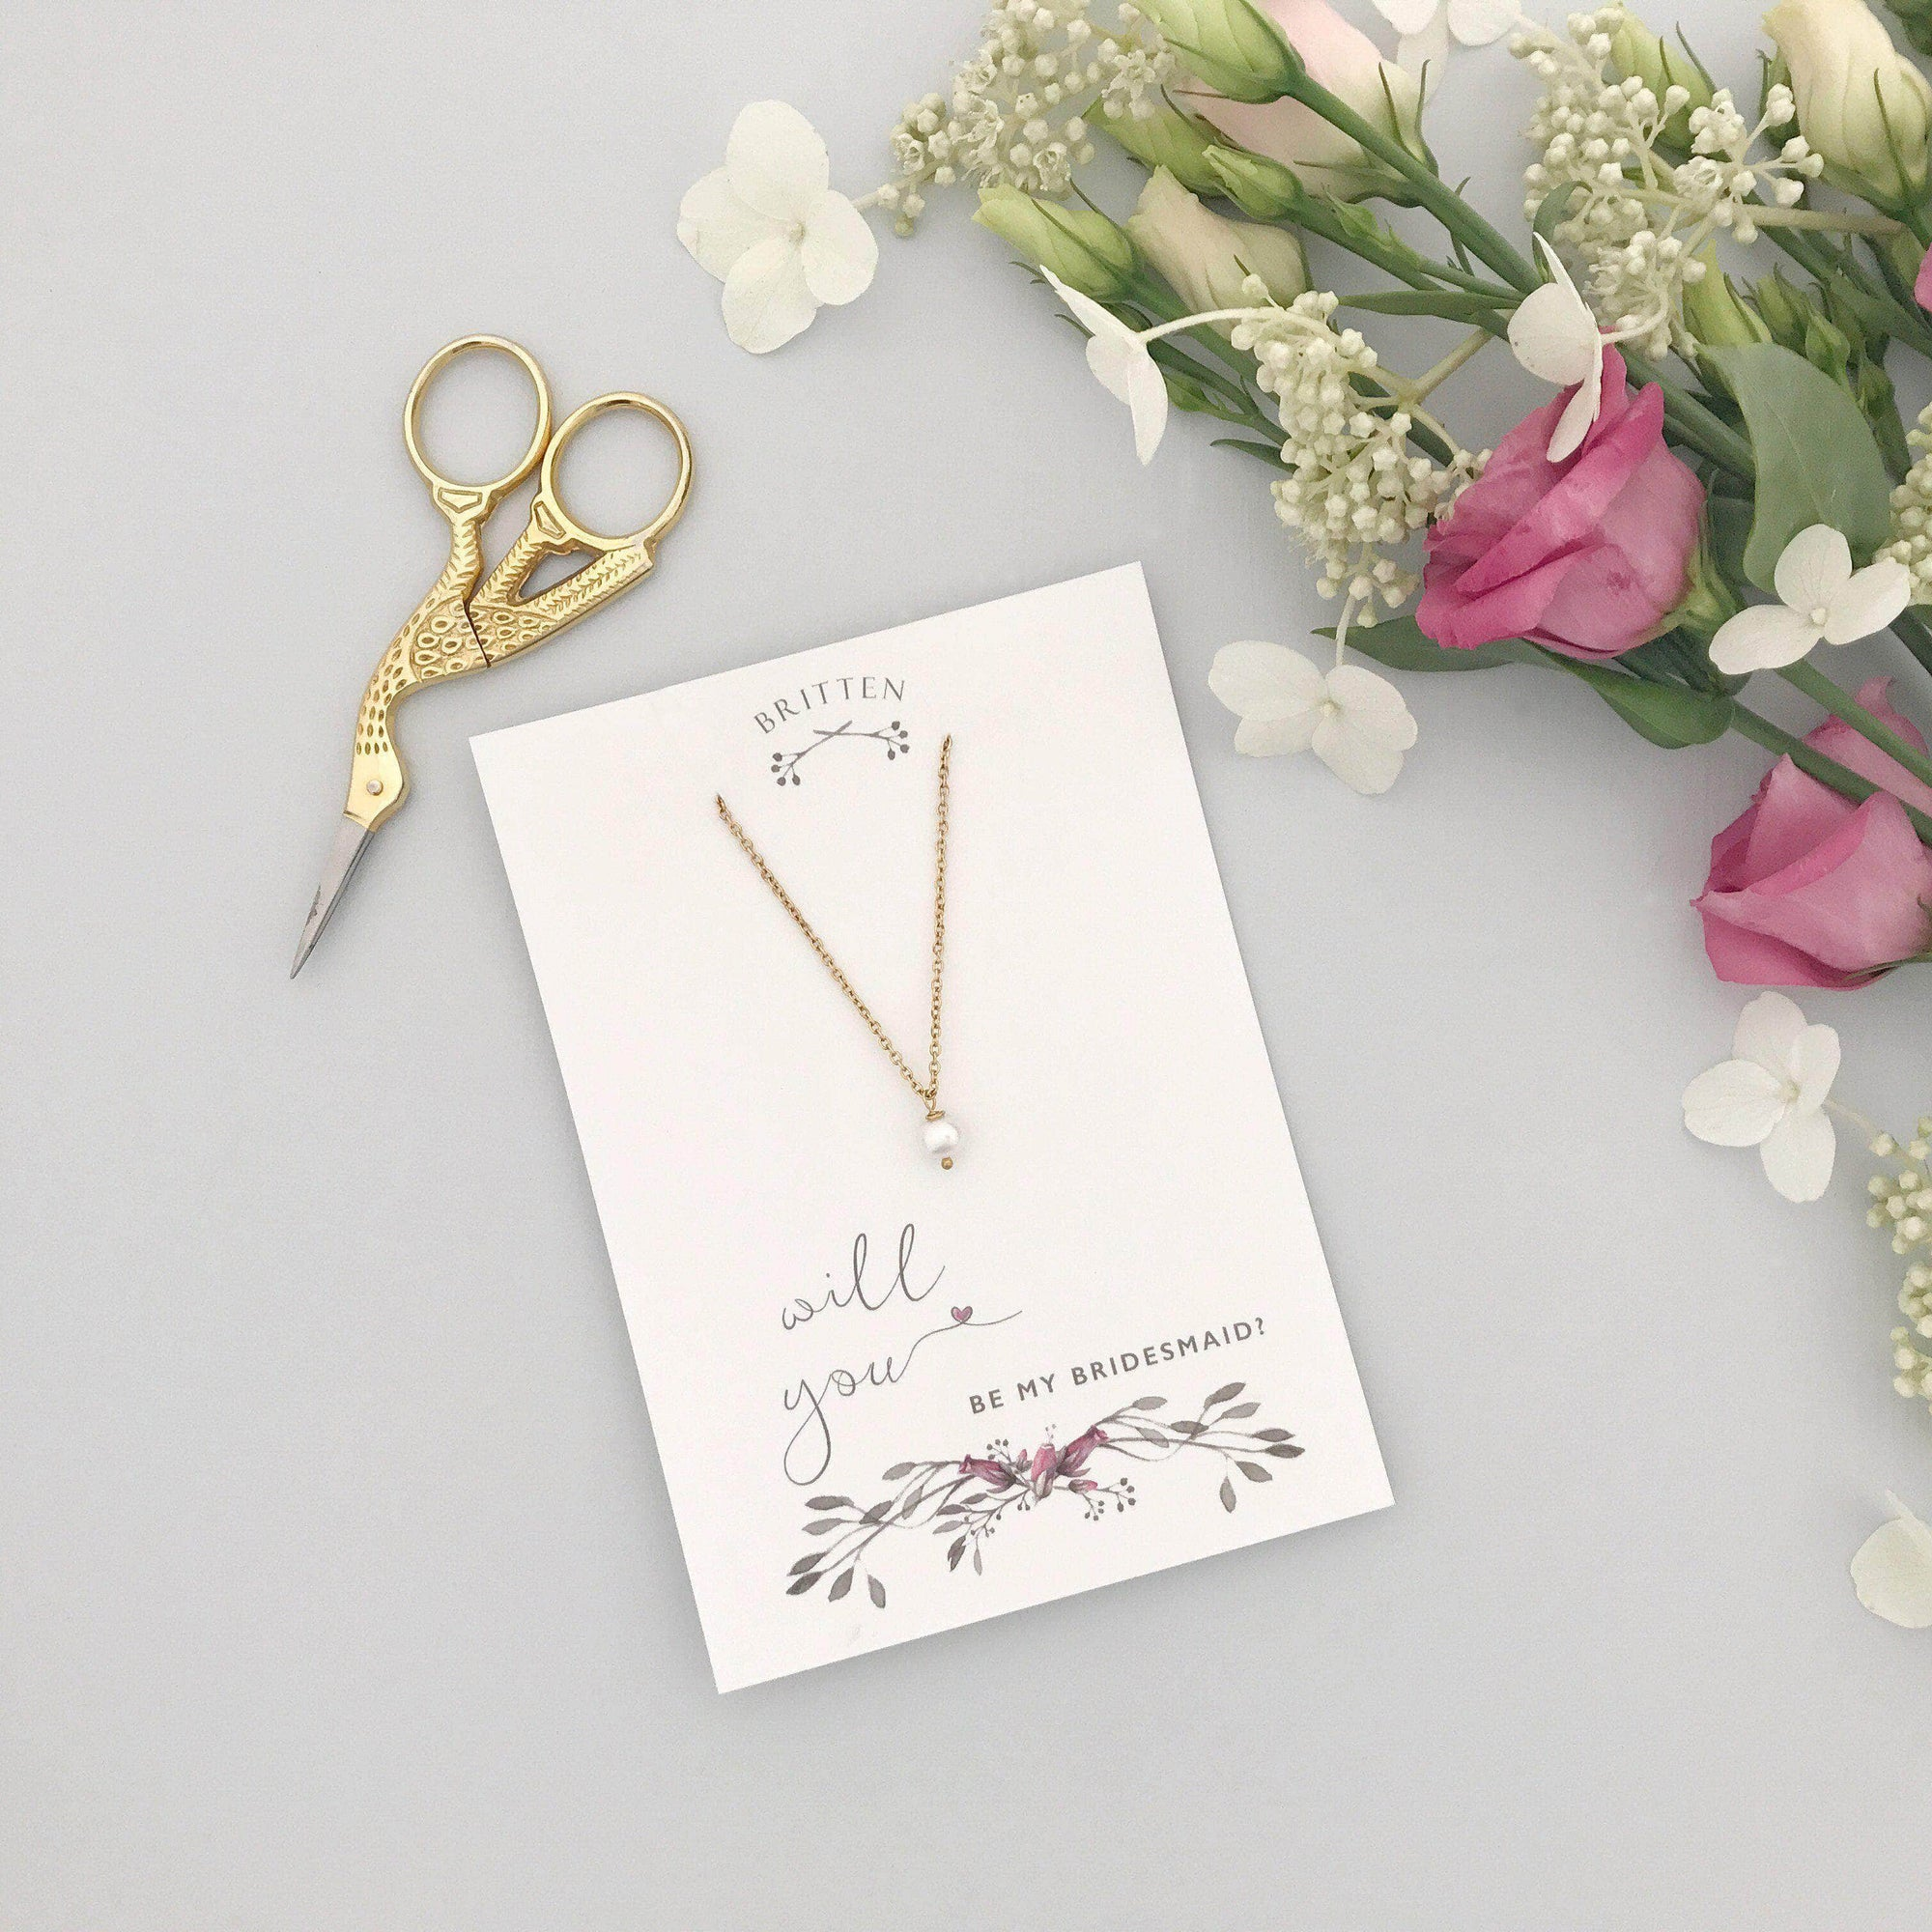 Bridesmaid Gift Gold Will you be my bridesmaid gift necklace - 'Seville' in gold